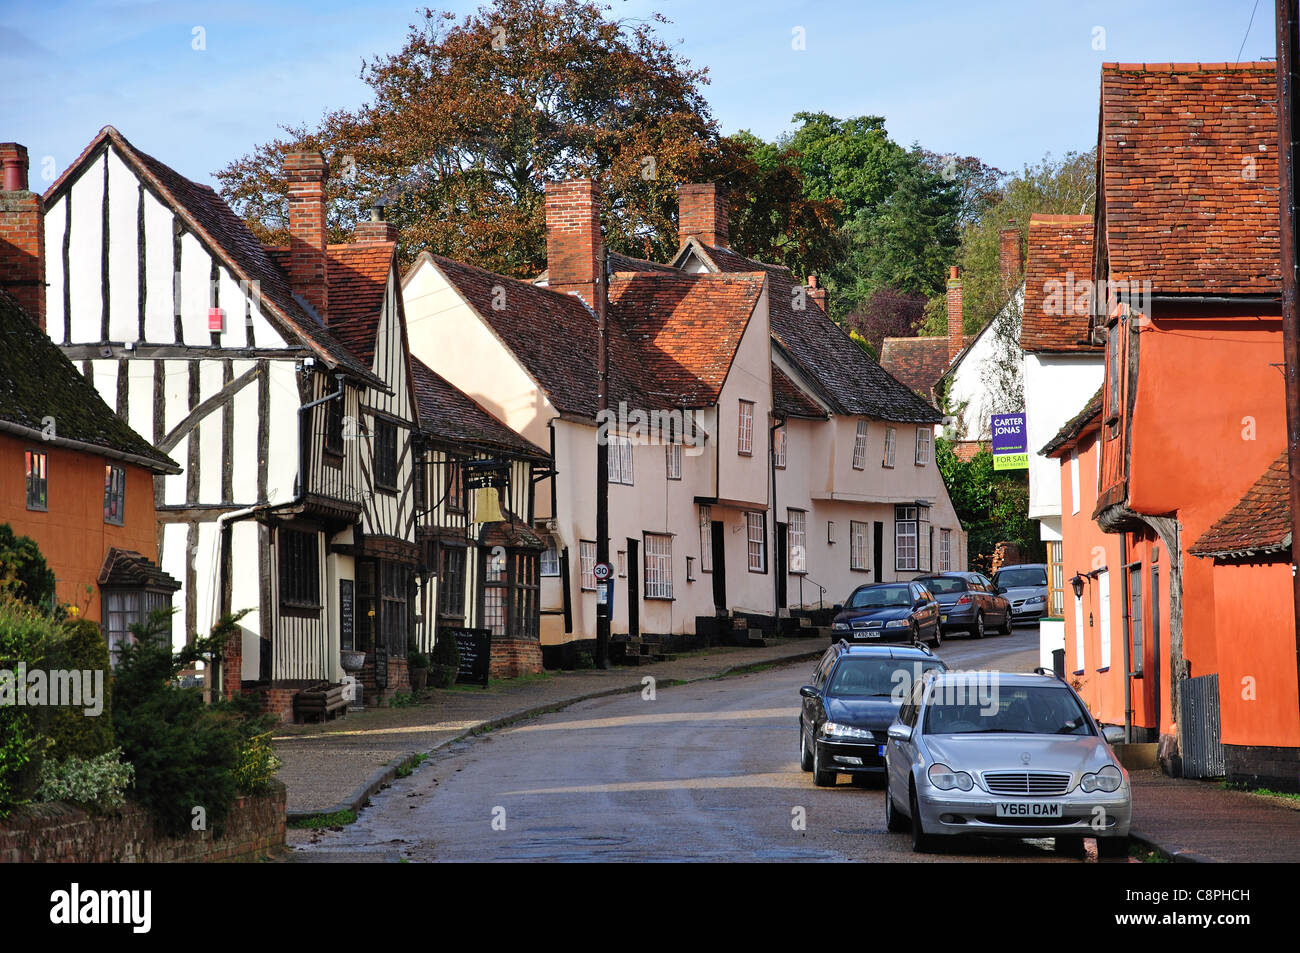 14th century, The Bell Inn and period houses, The Street, Kersey, Suffolk, England, United Kingdom - Stock Image